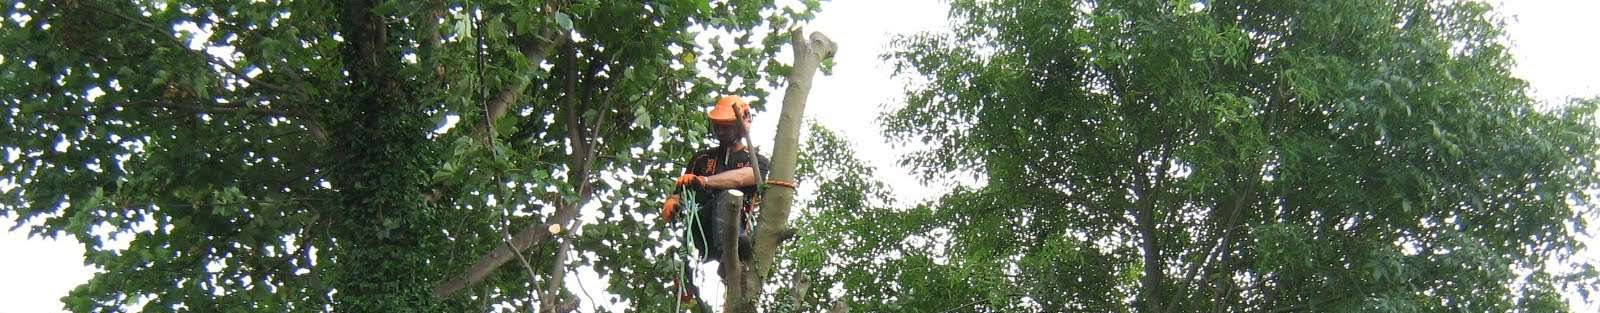 Tree surgeon west midlands